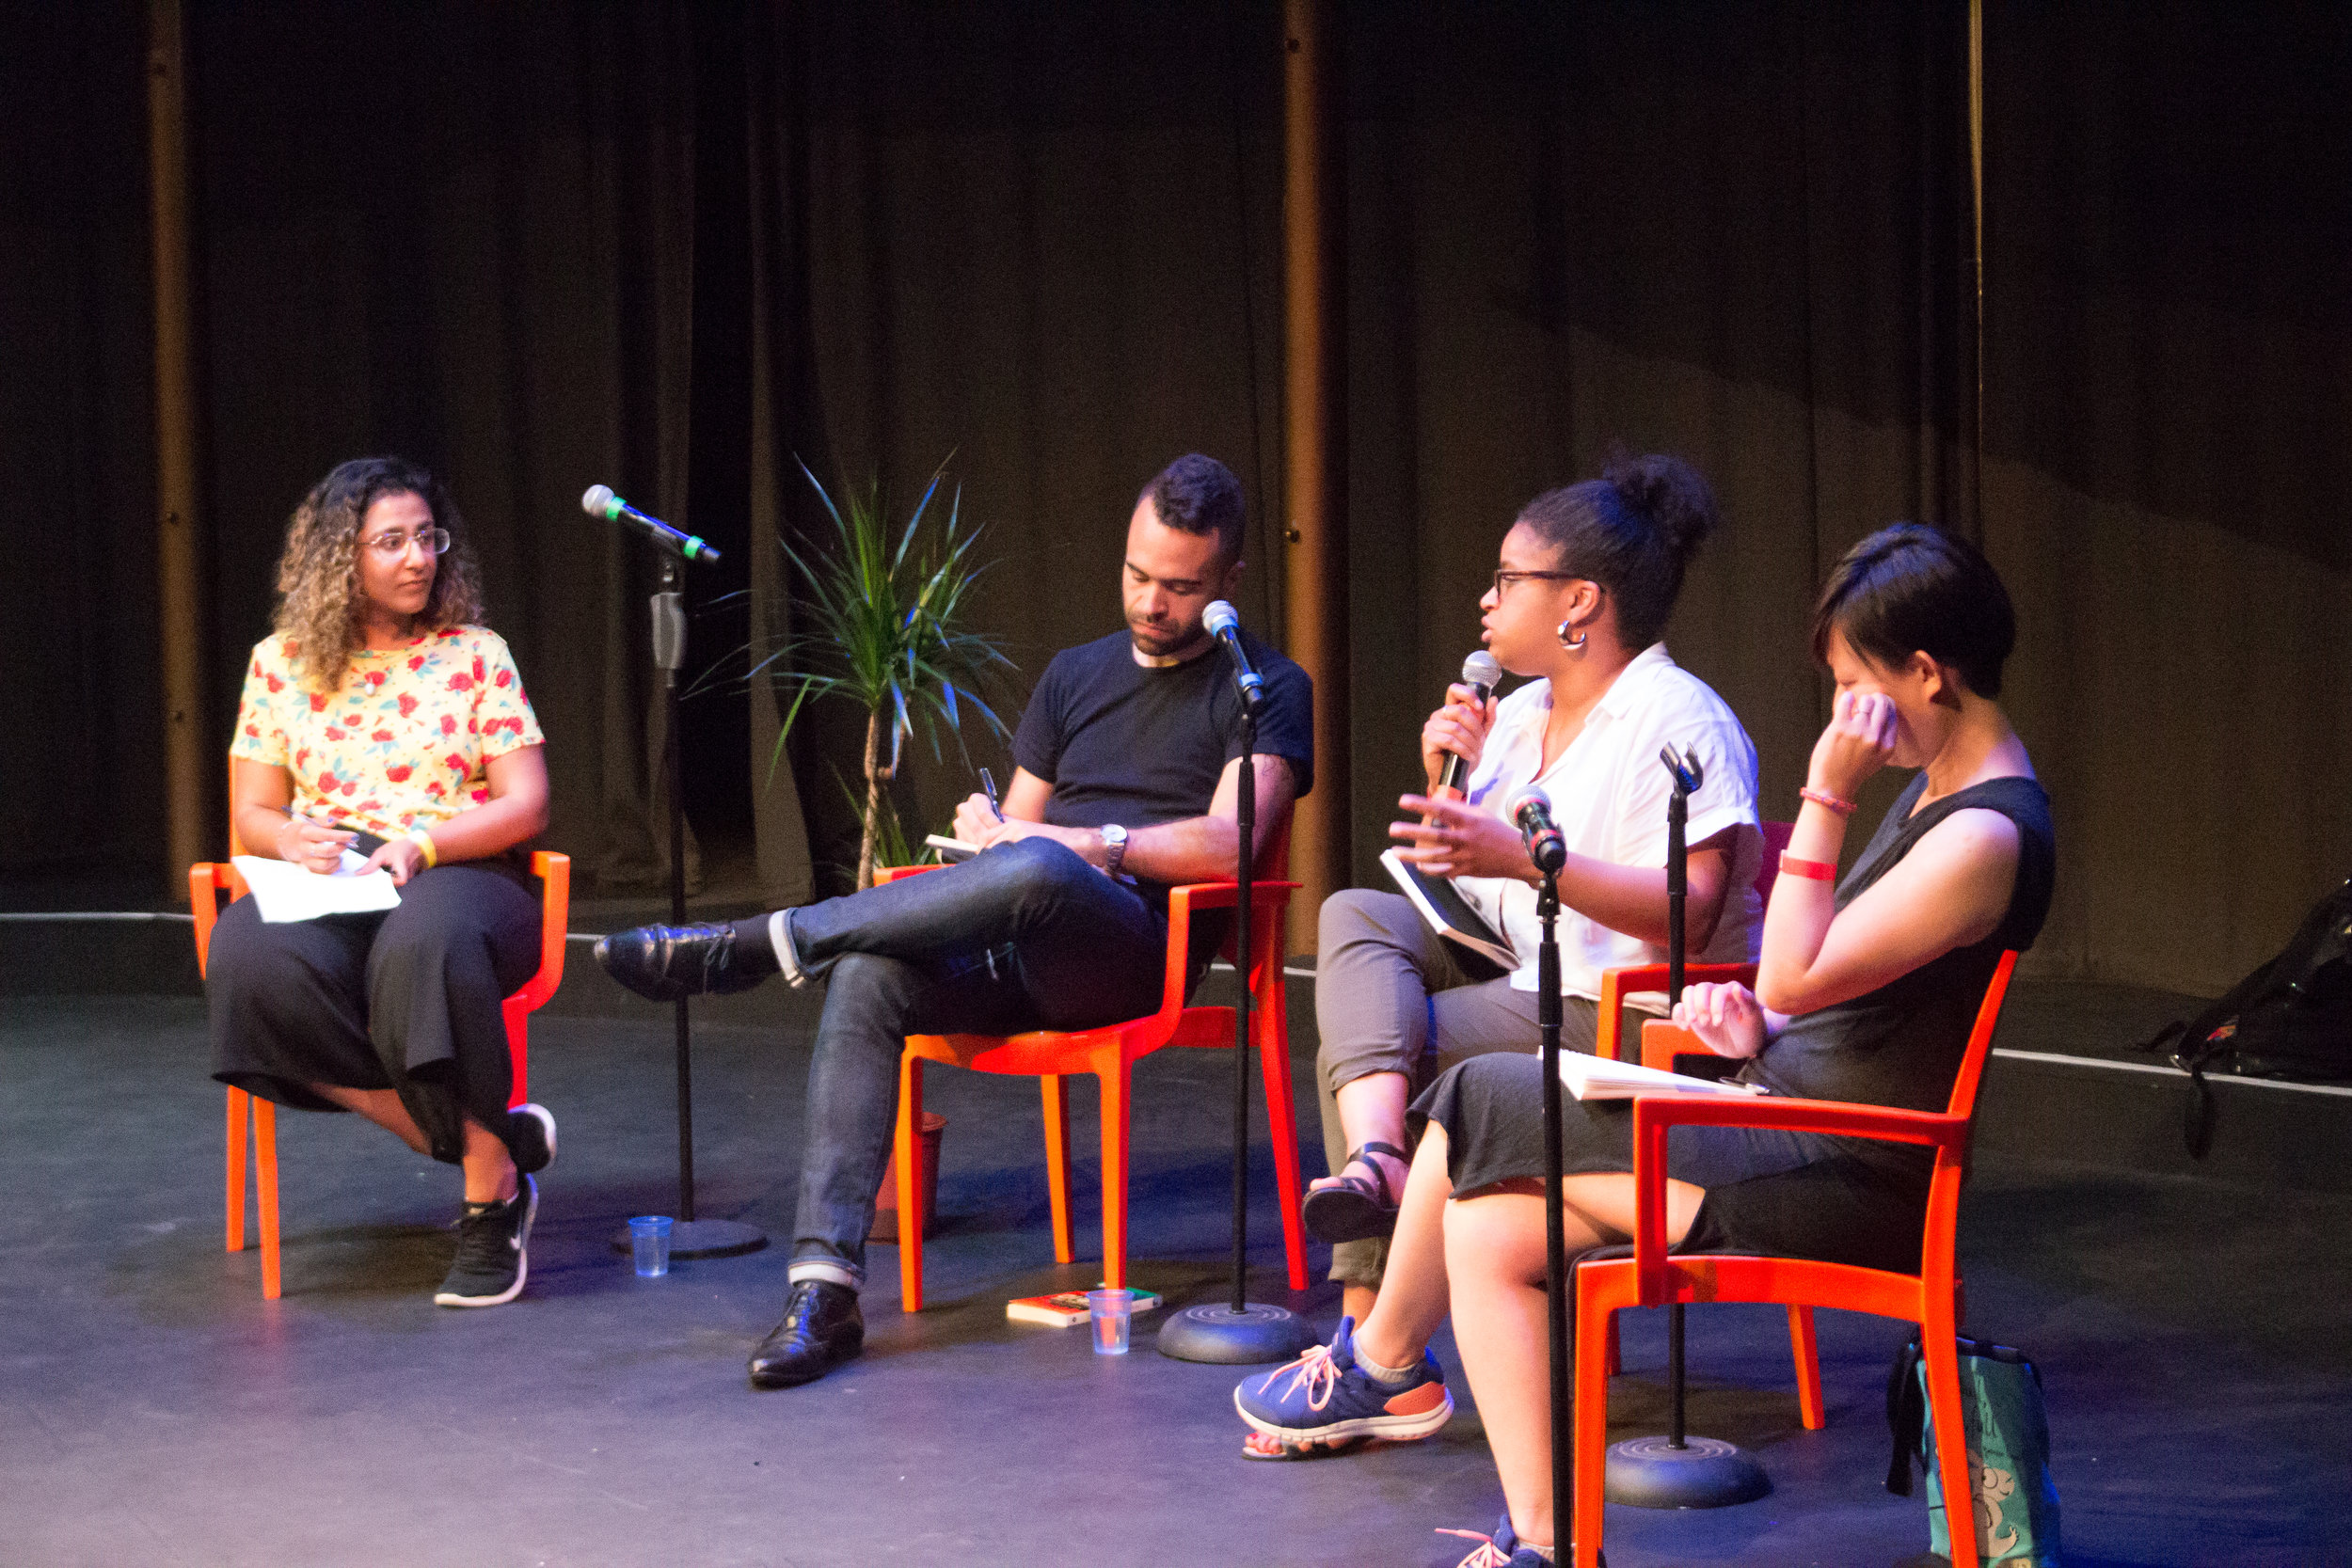 From left: Henna Zamurd-Butt, Marcus Gilroy-Ware, Kelly Foster, Yen Ooi at Bare Lit 2018 (Image by  Sarah Nwafor )